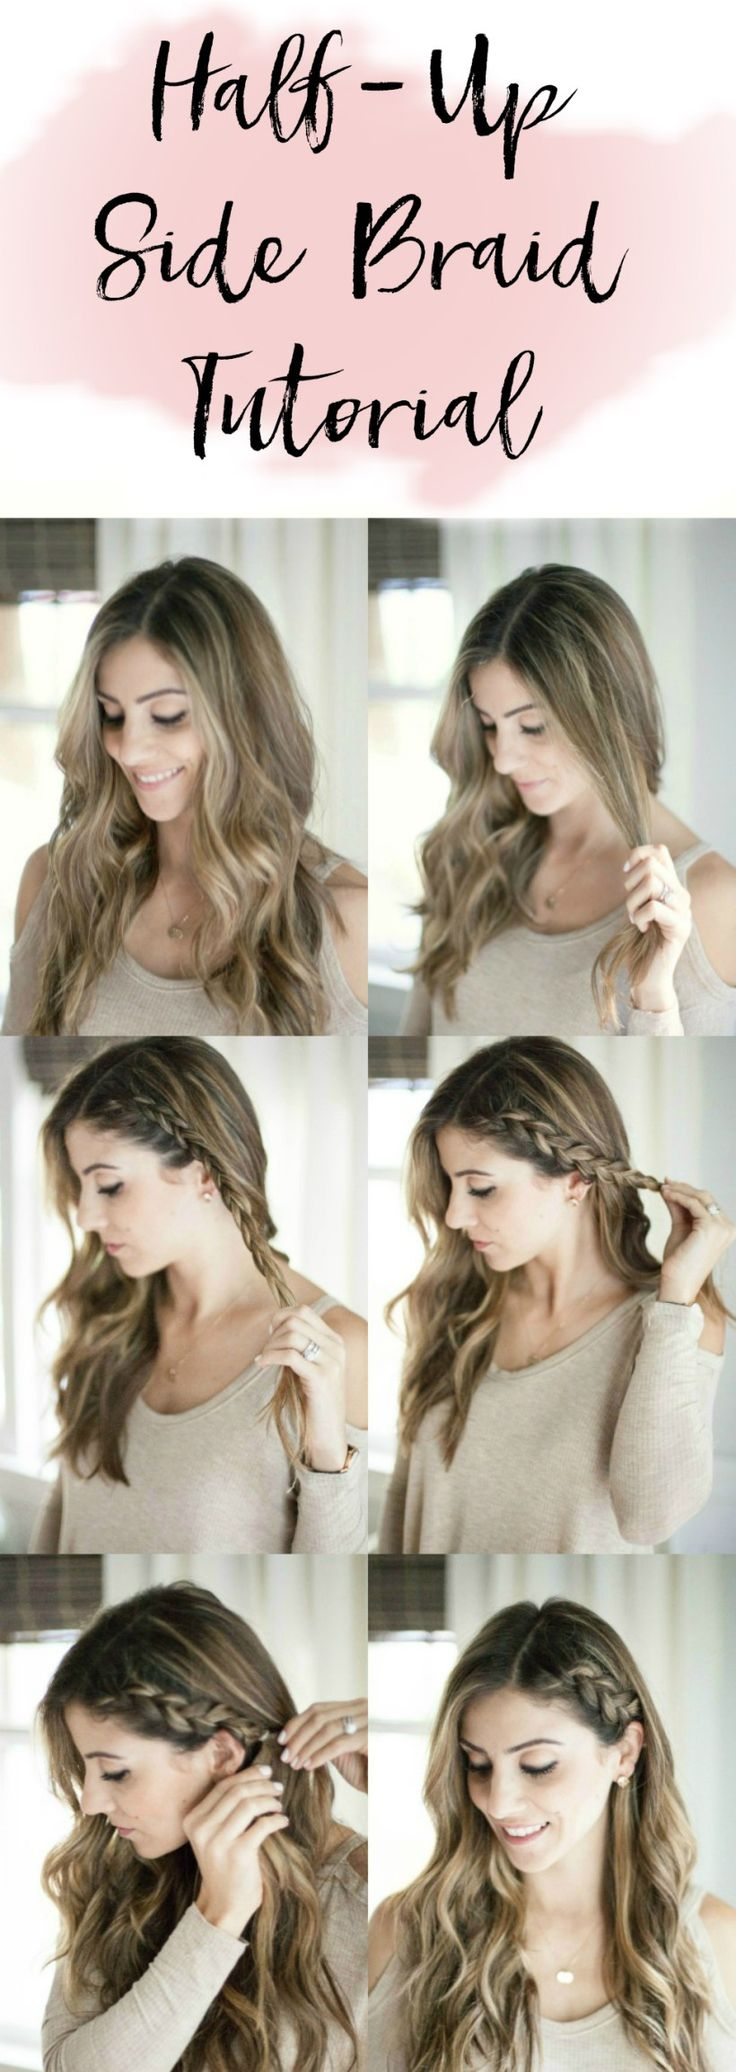 A Simple Half Up Side Braid Hair Tutorial Perfect For Adding A Little  Elegance To Your